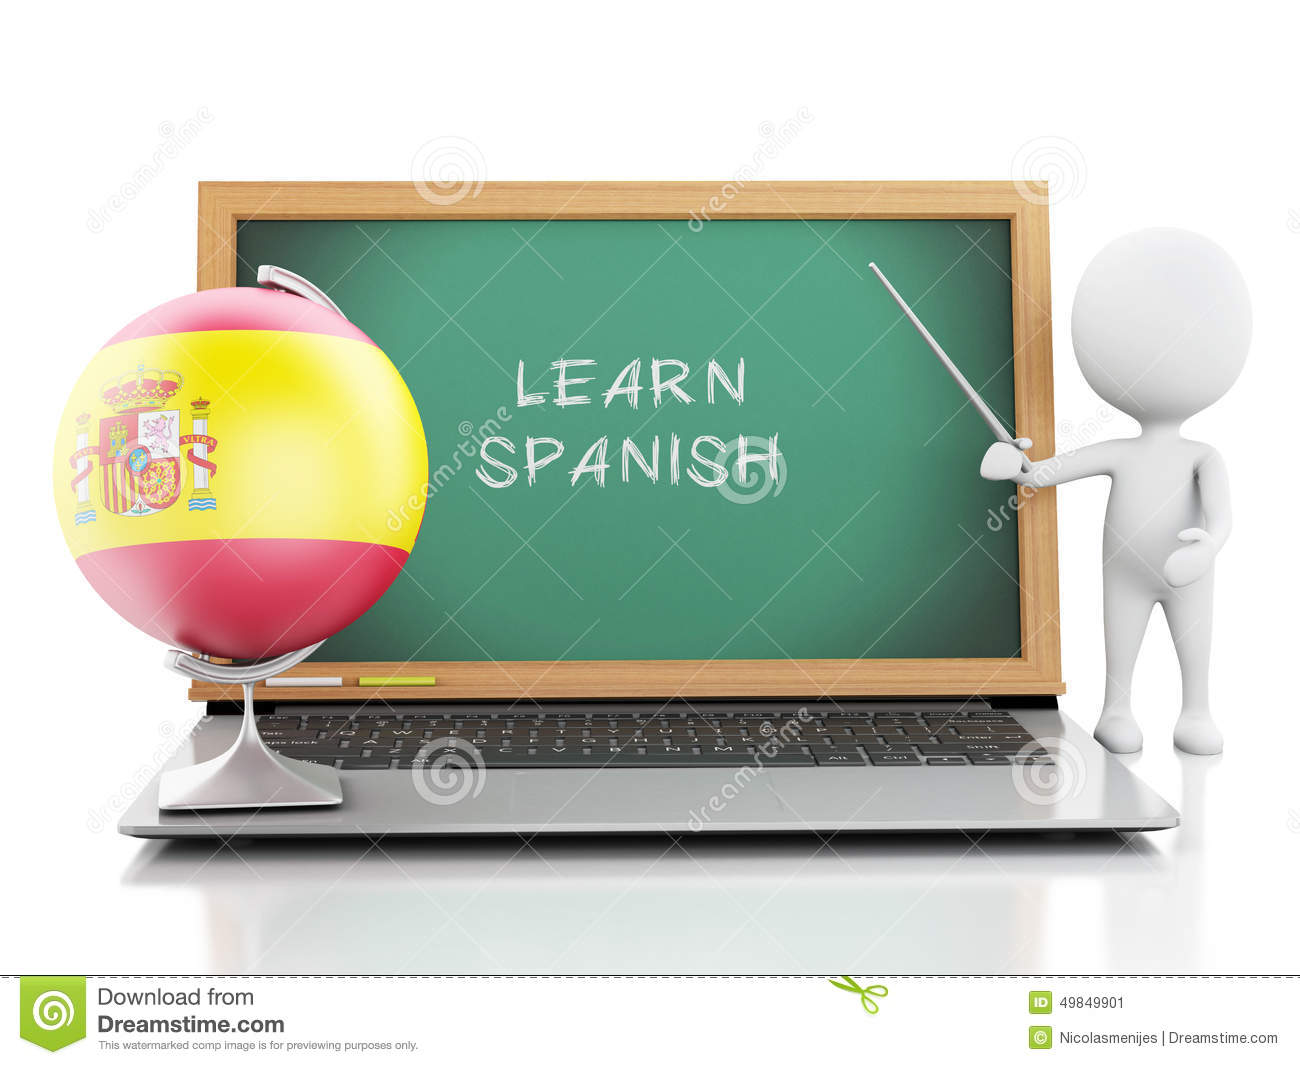 how to say laptop in spanish